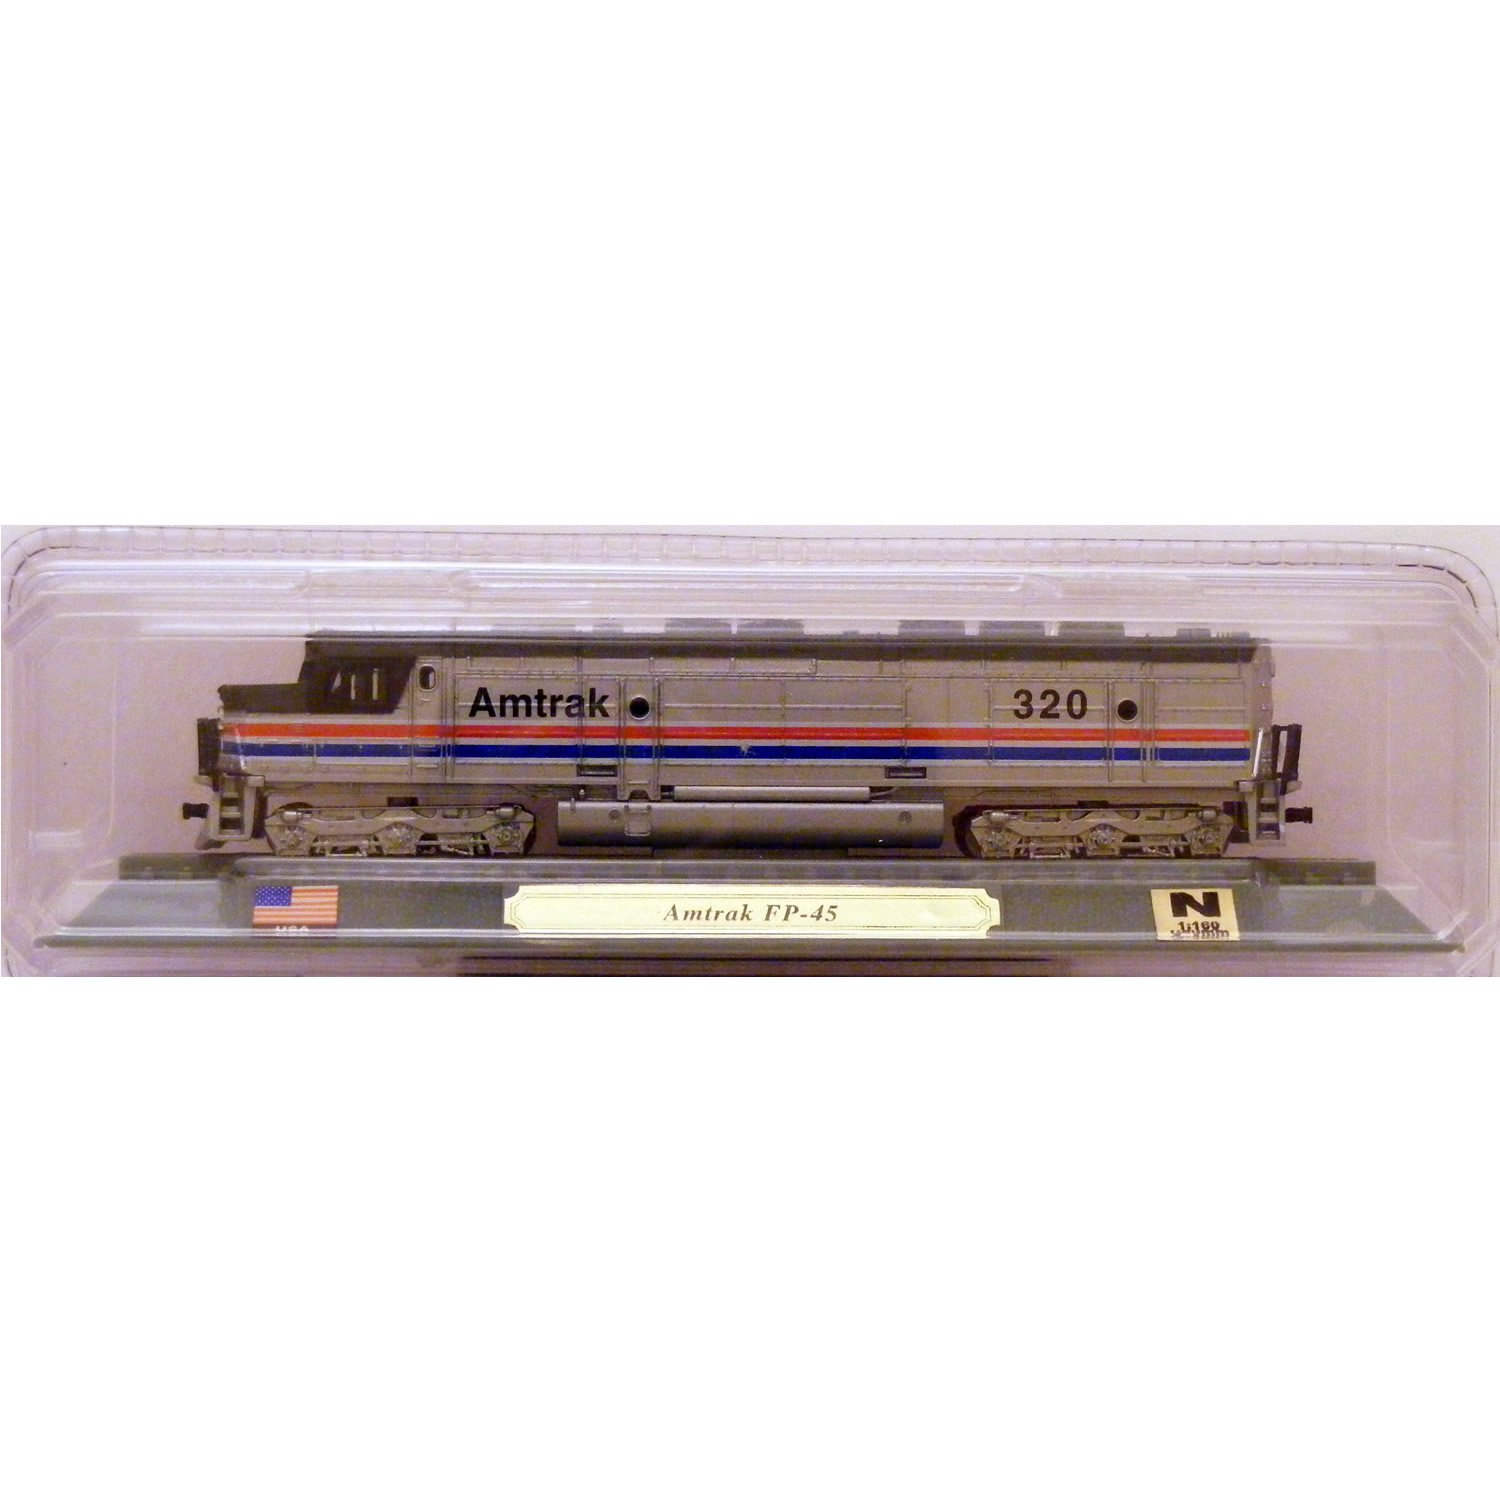 Del Prado N Gauge Amtrak FP-45 Diesel Locomotive of the USA